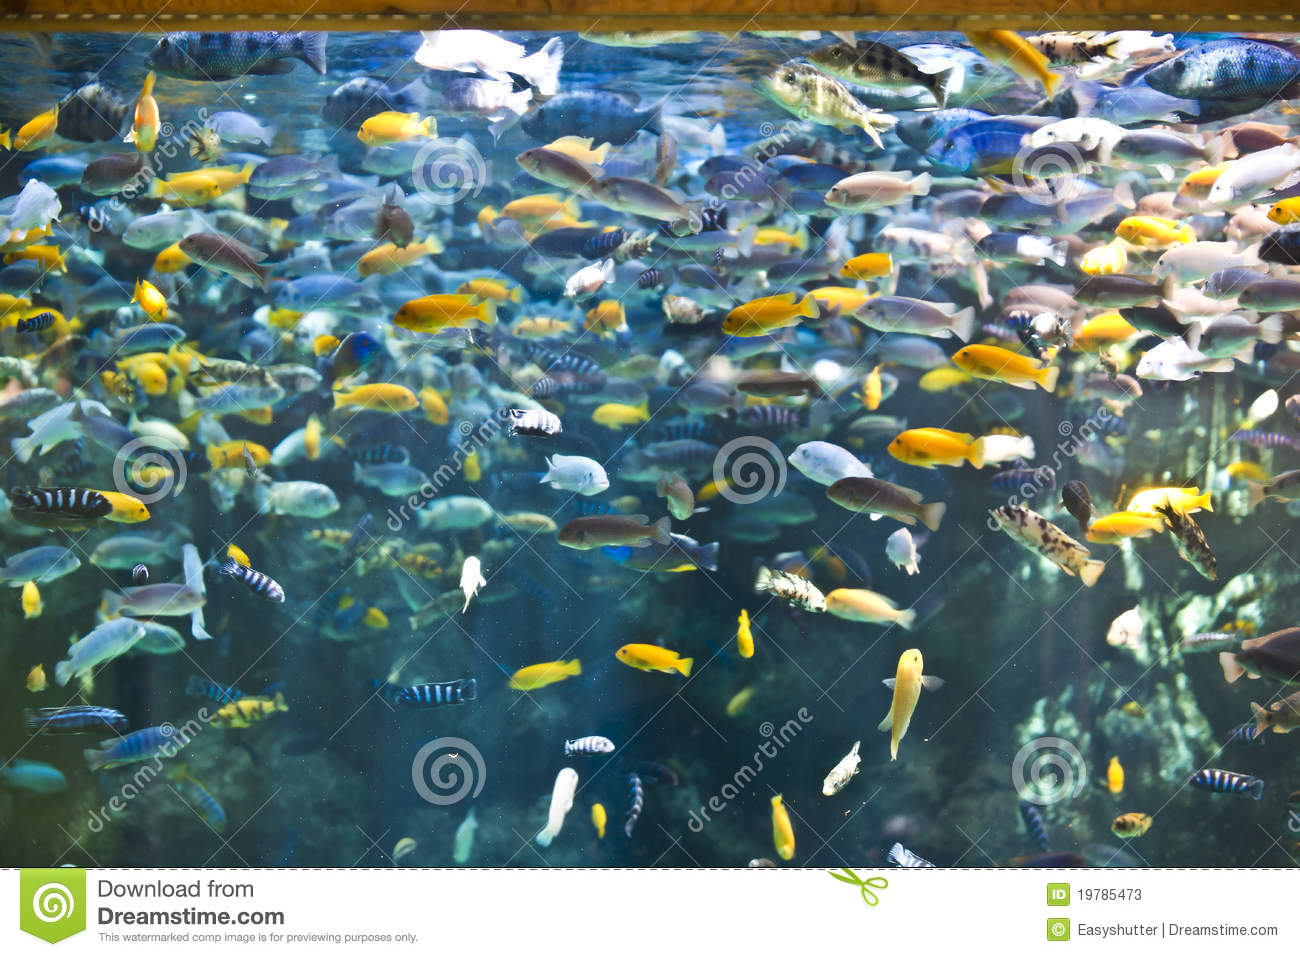 Fish tank stock photos image 19785473 for Fish and pets unlimited